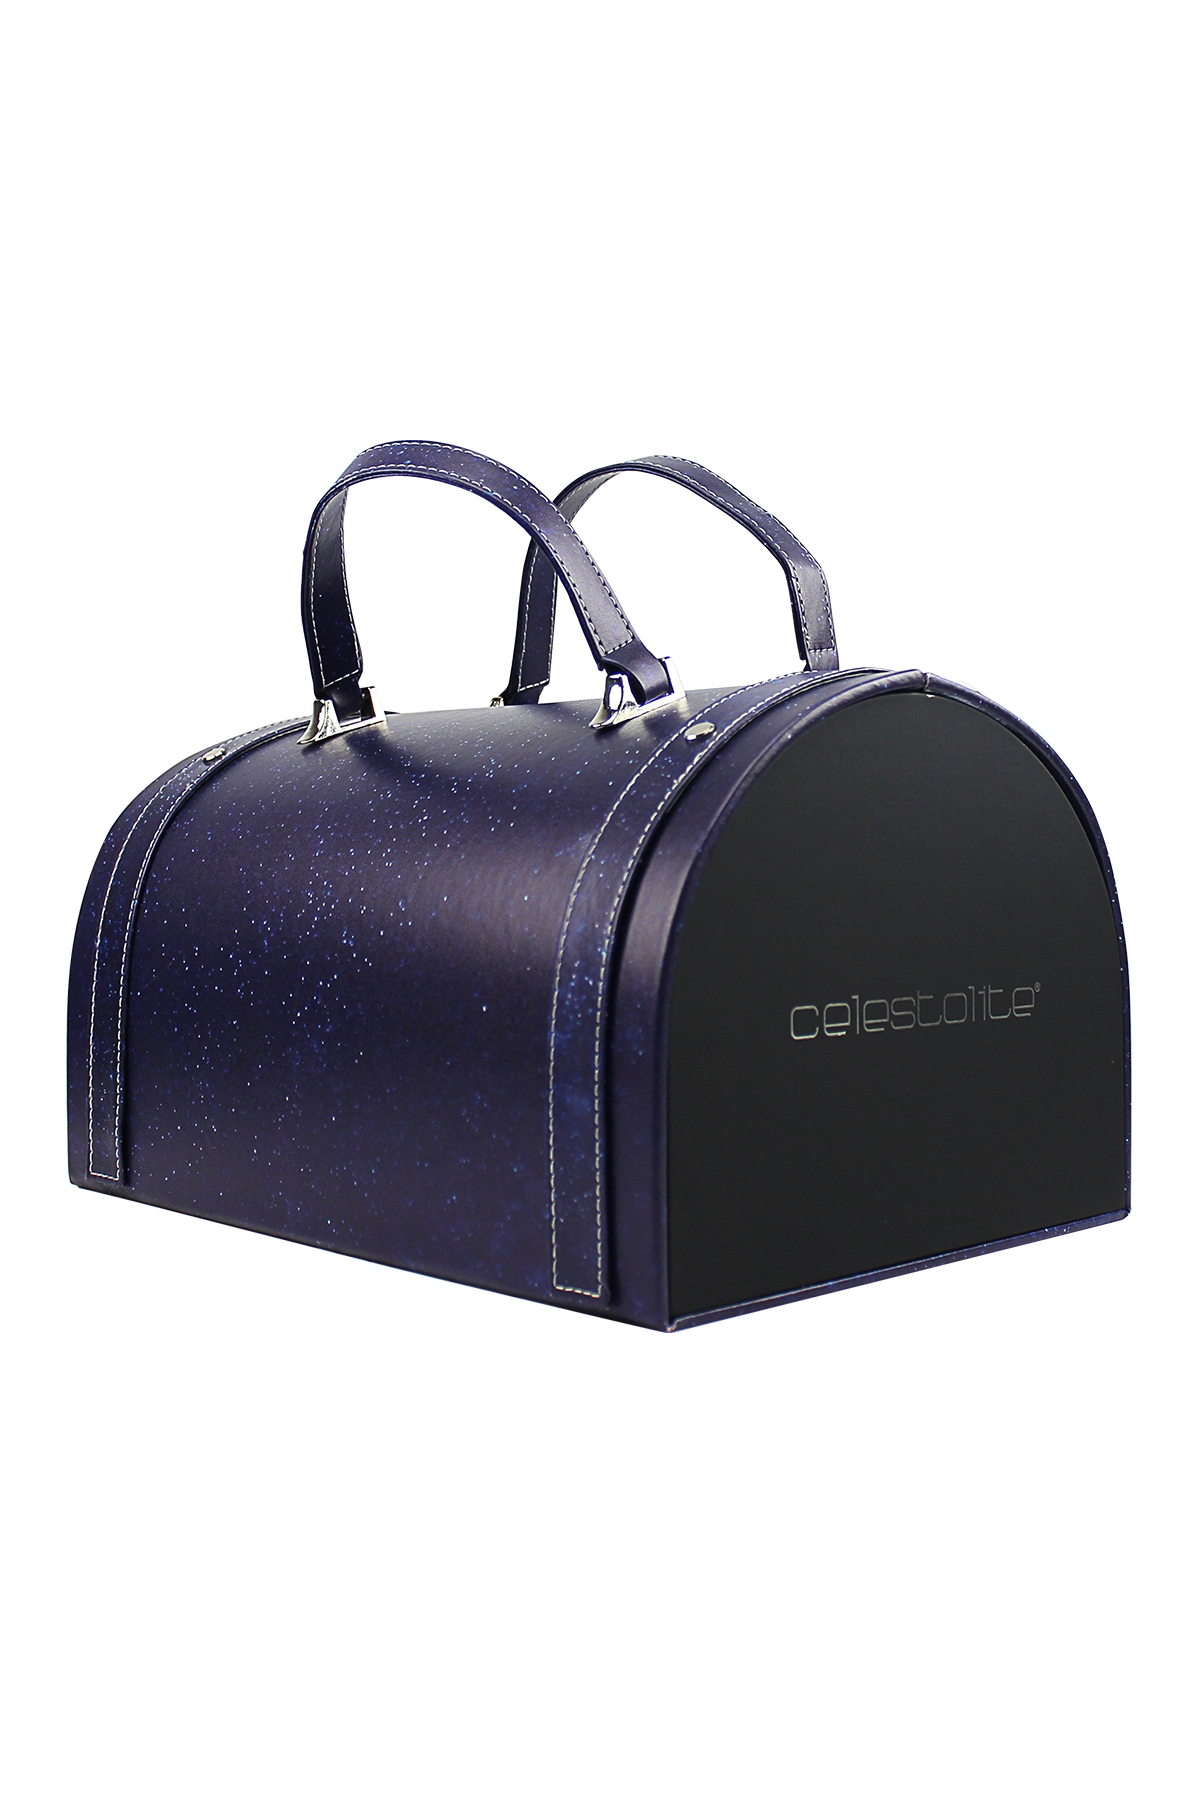 CELESTOLITE BEAUTY SUITCASE